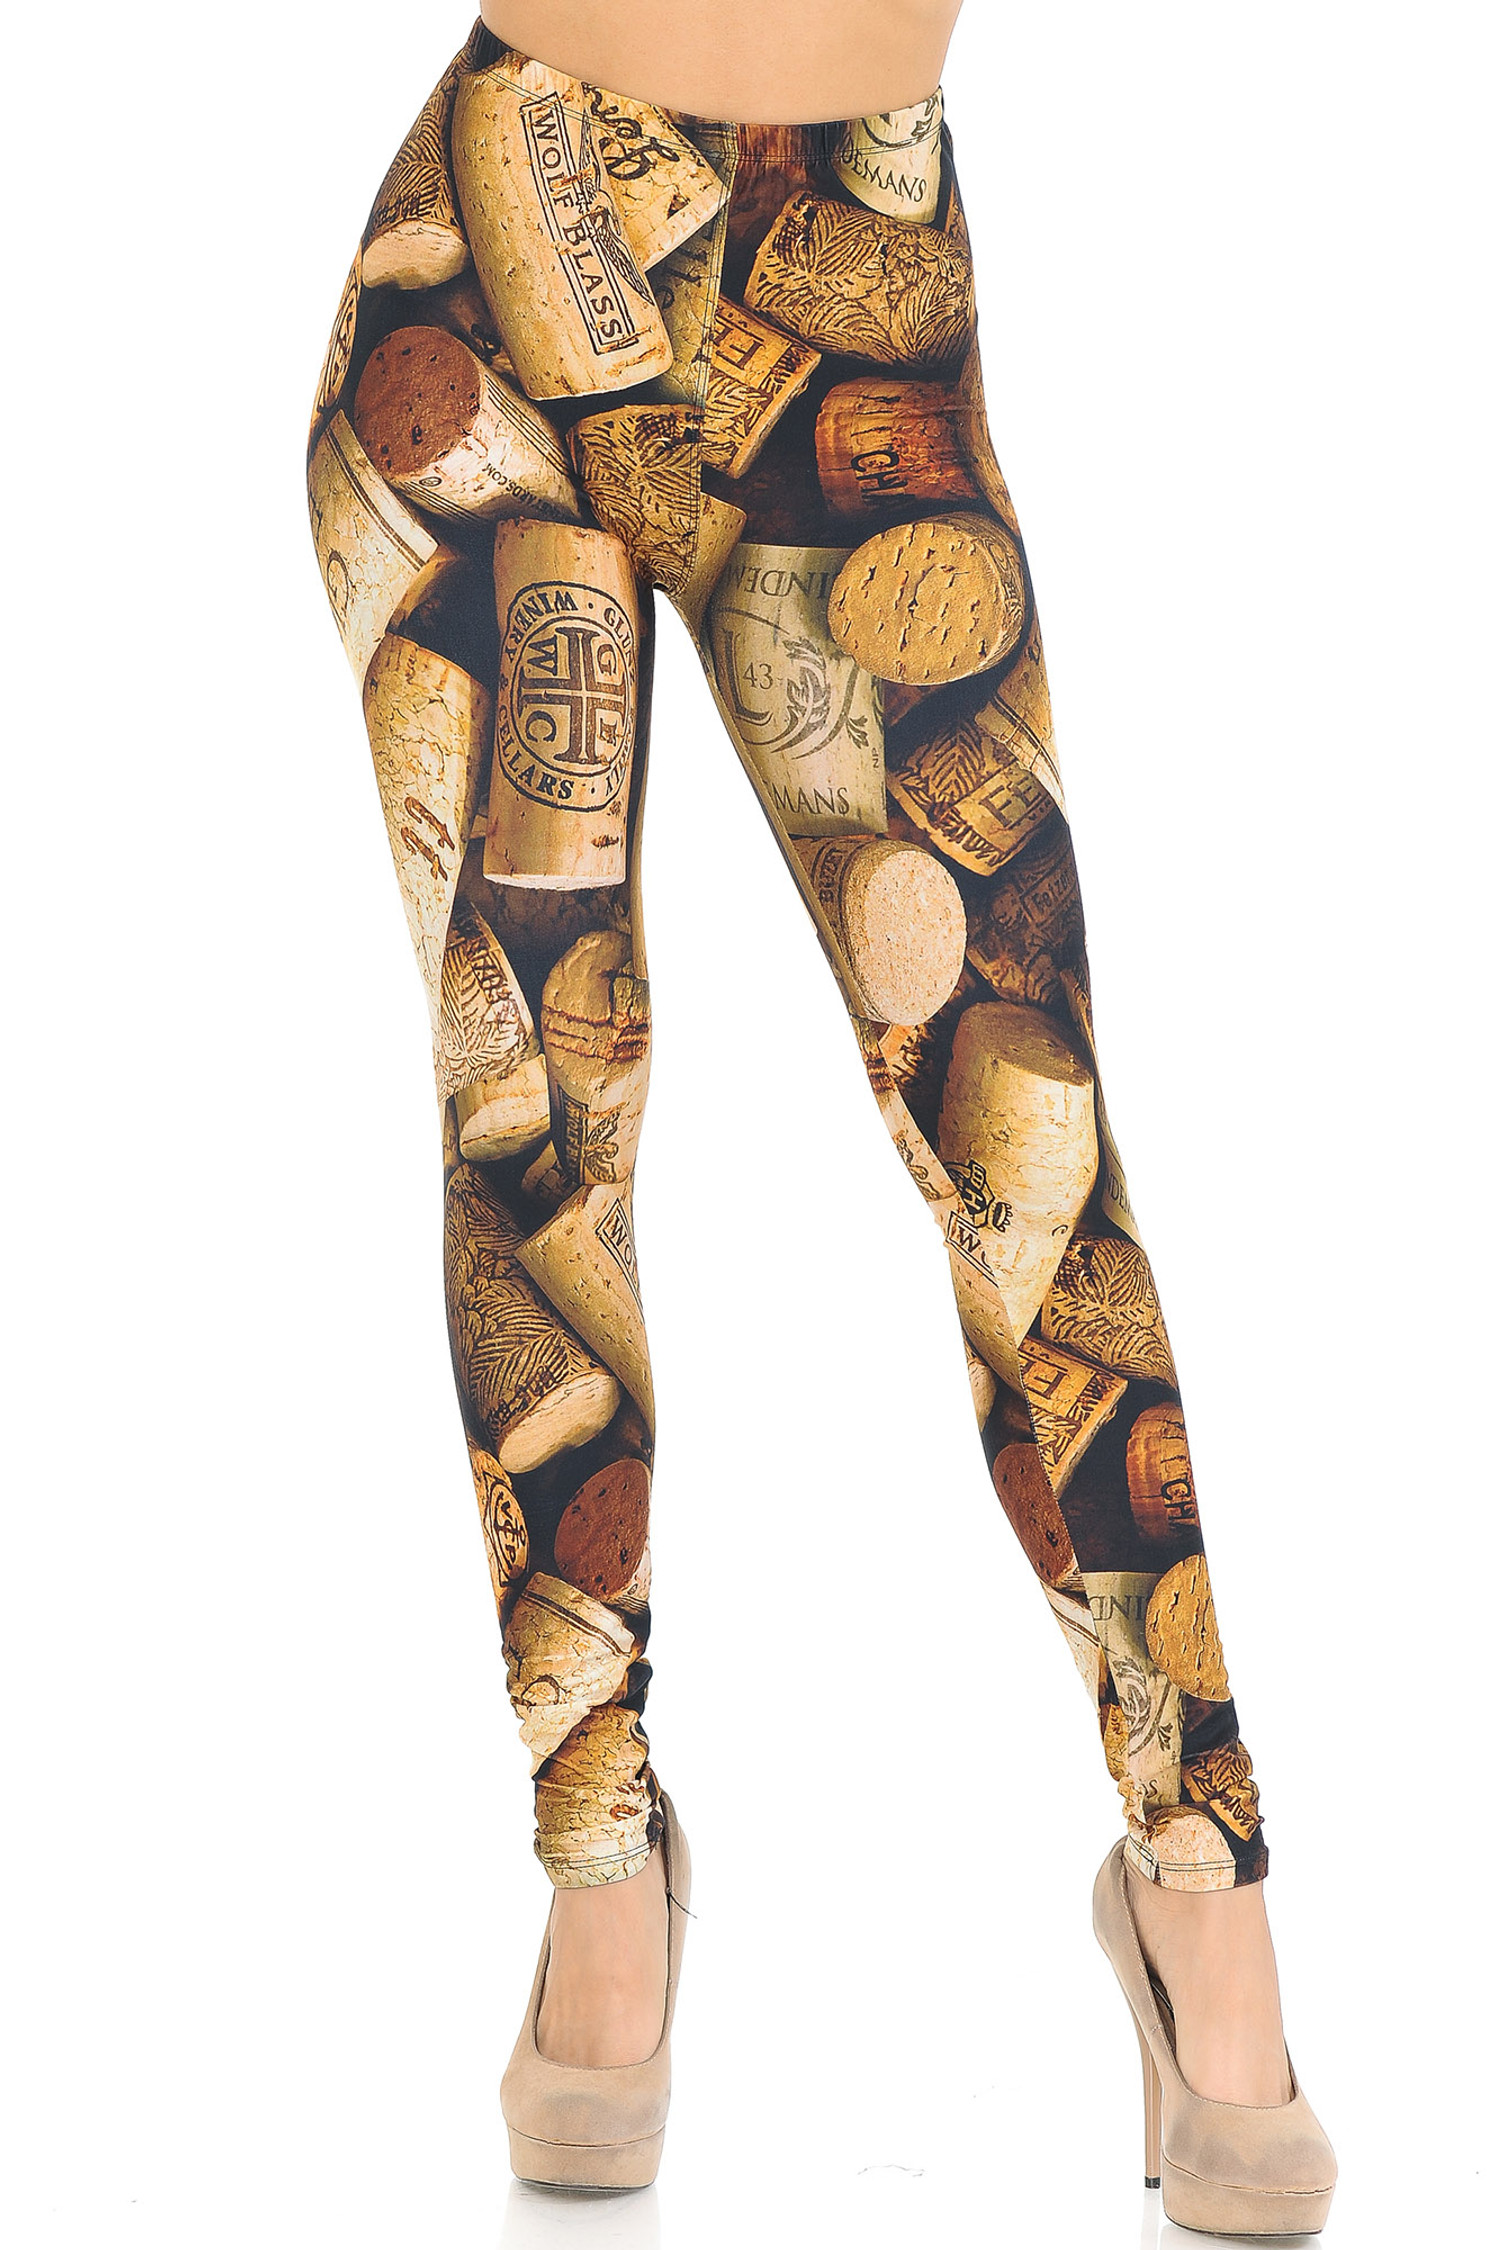 Creamy Soft Wine Cork Leggings - USA Fashion™